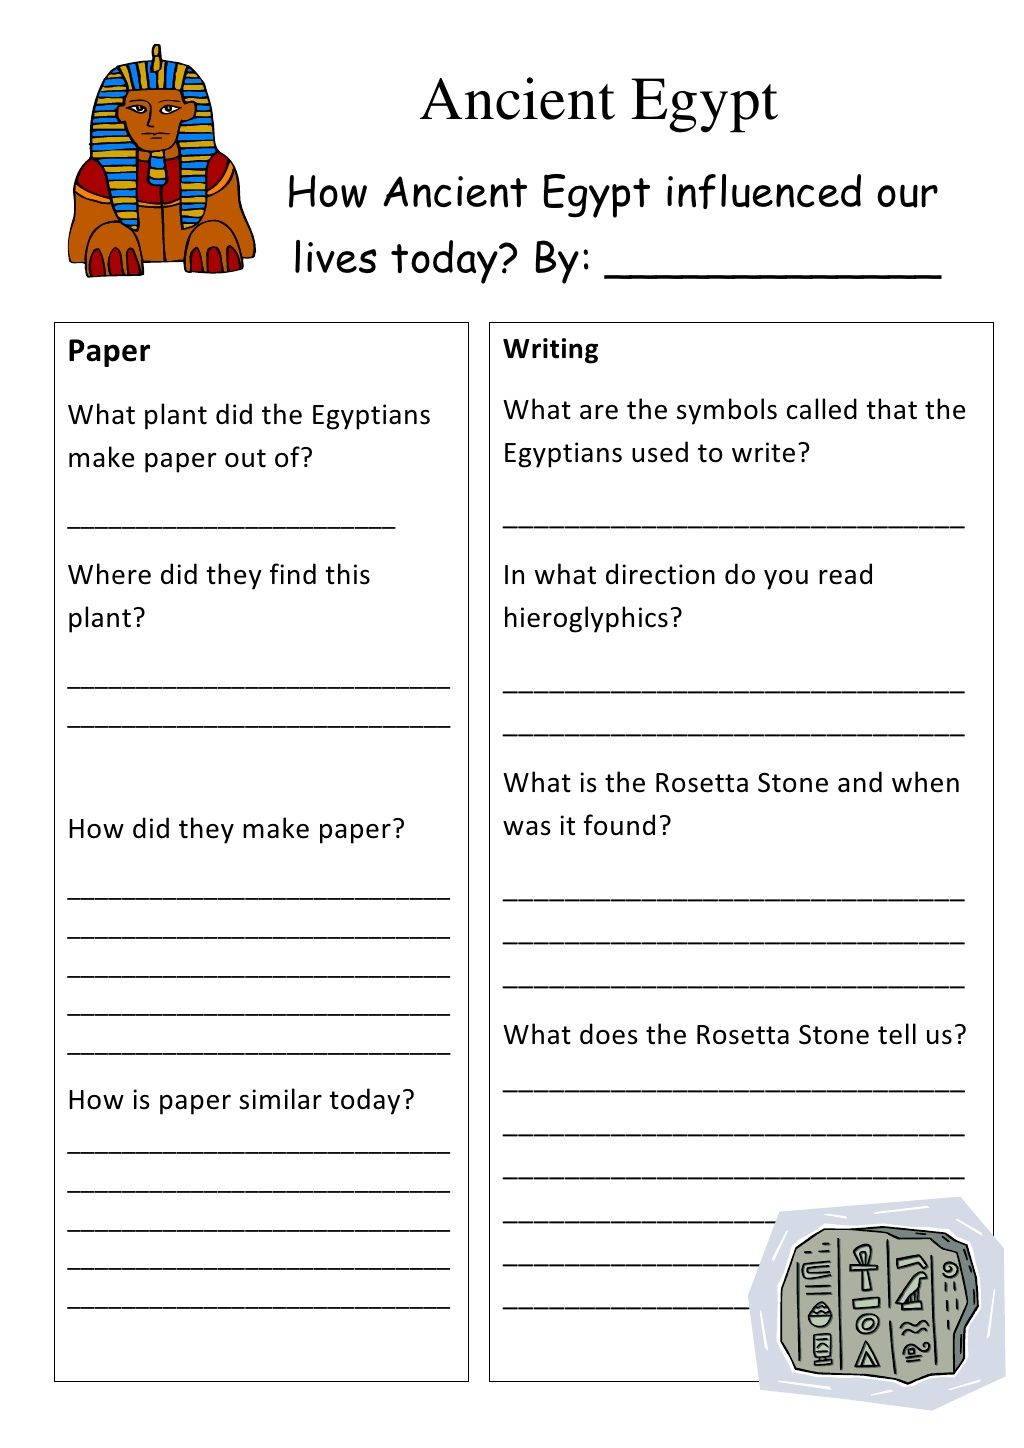 Ancient egypt worksheet   Ancient egypt unit study [ 1448 x 1024 Pixel ]